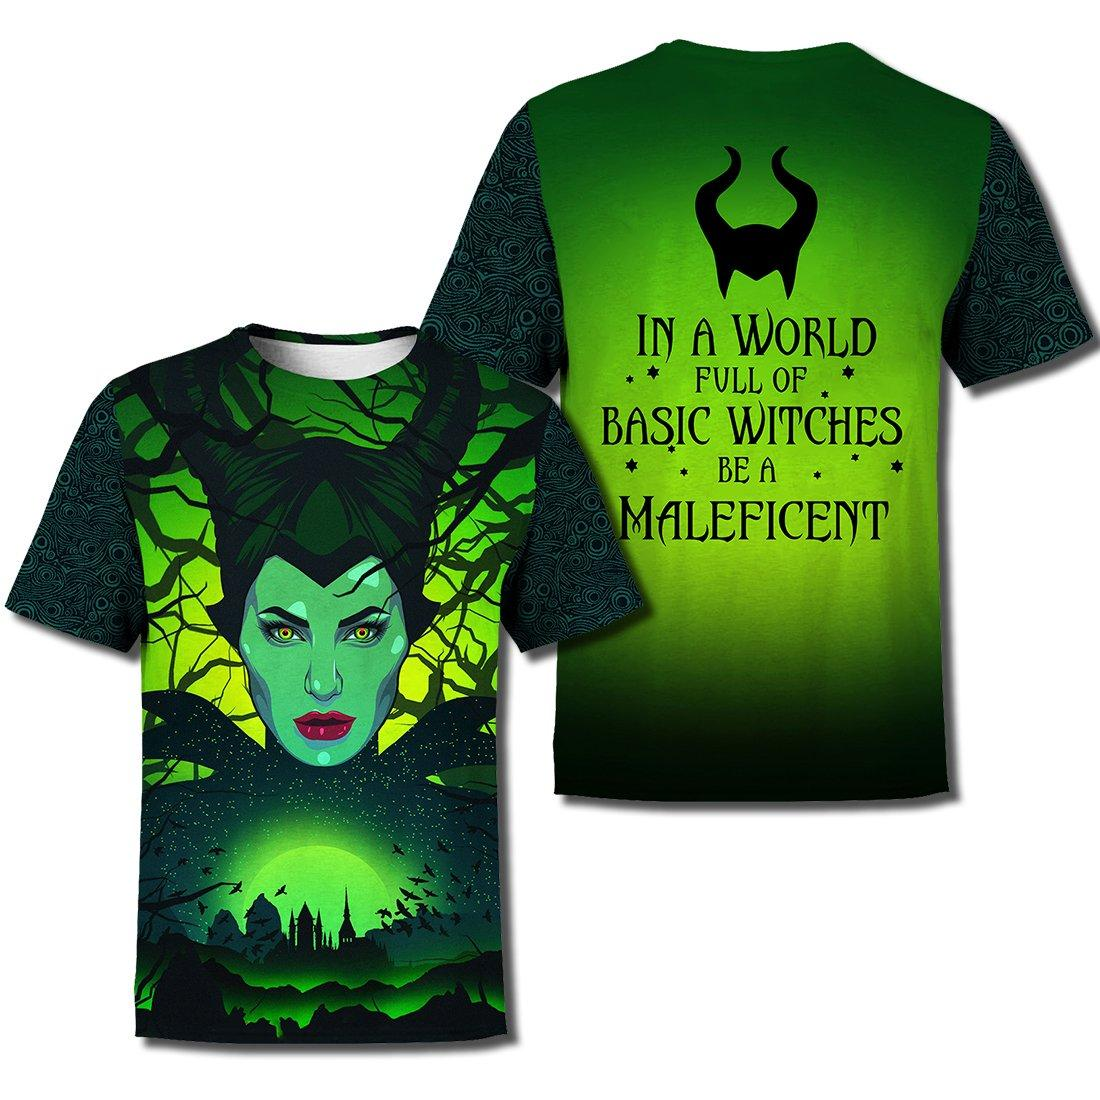 In a world full of basic witches be a maleficent 3d t-shirt